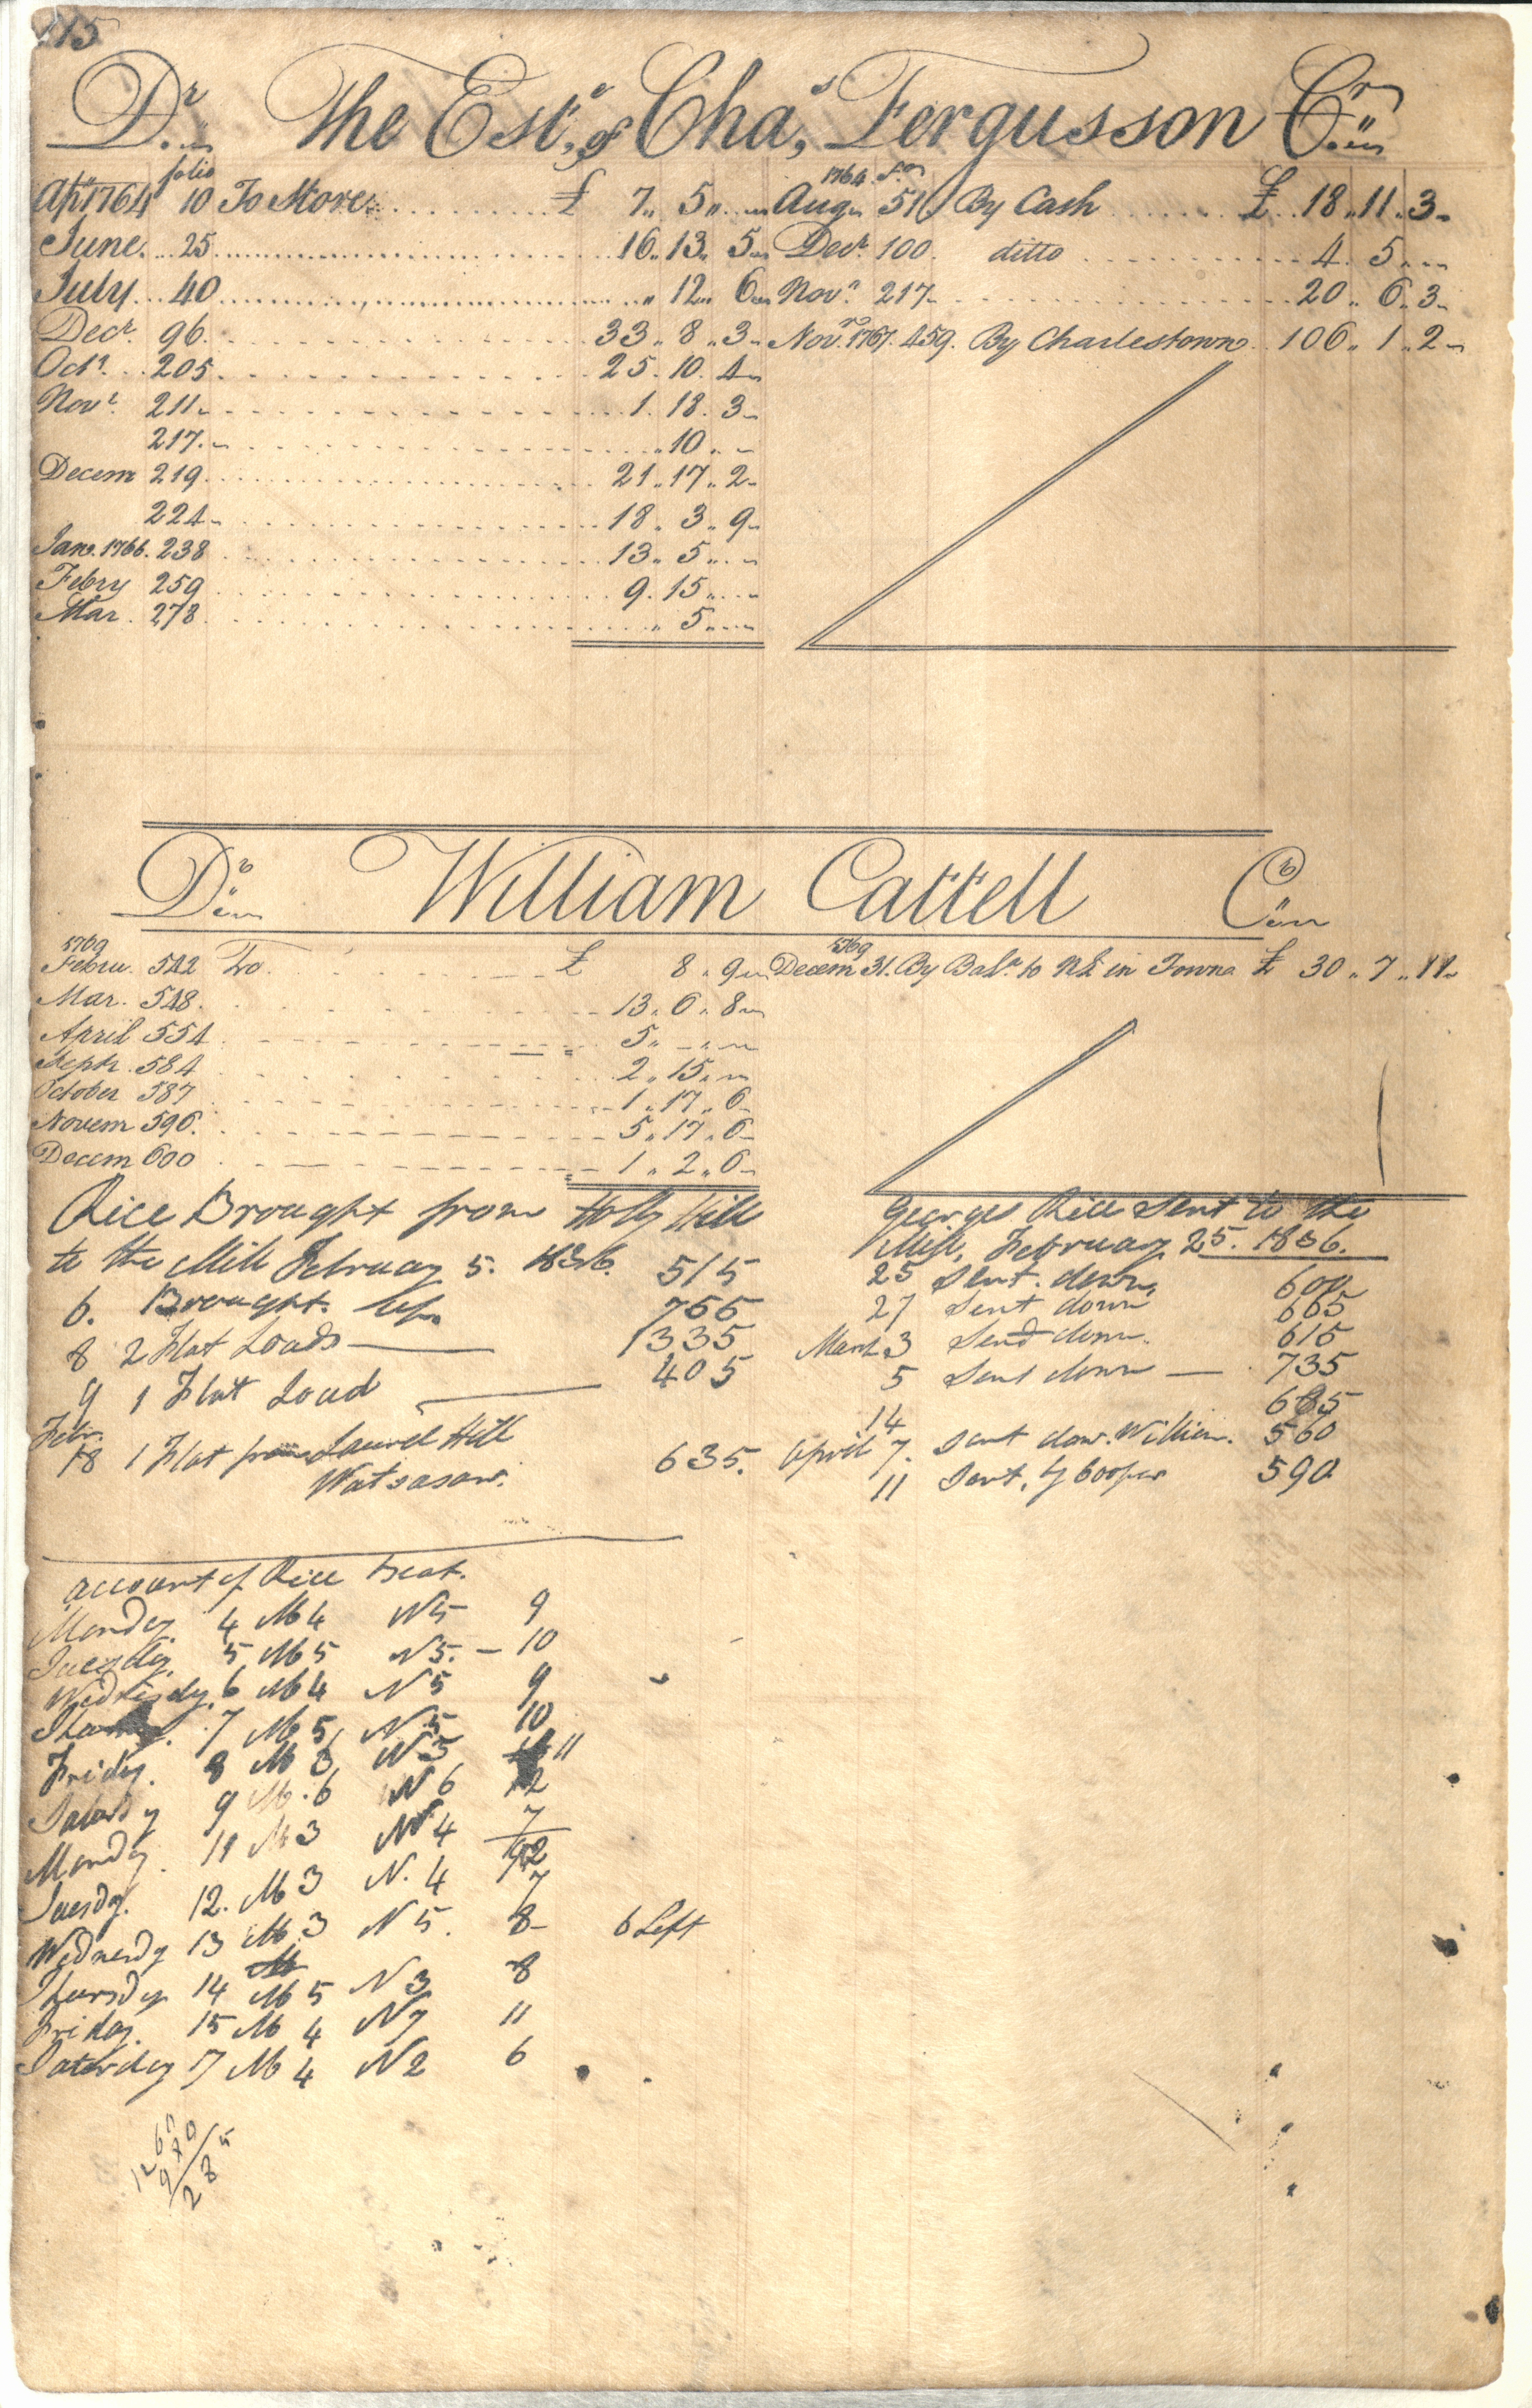 Plowden Weston's Business Ledger, page 115